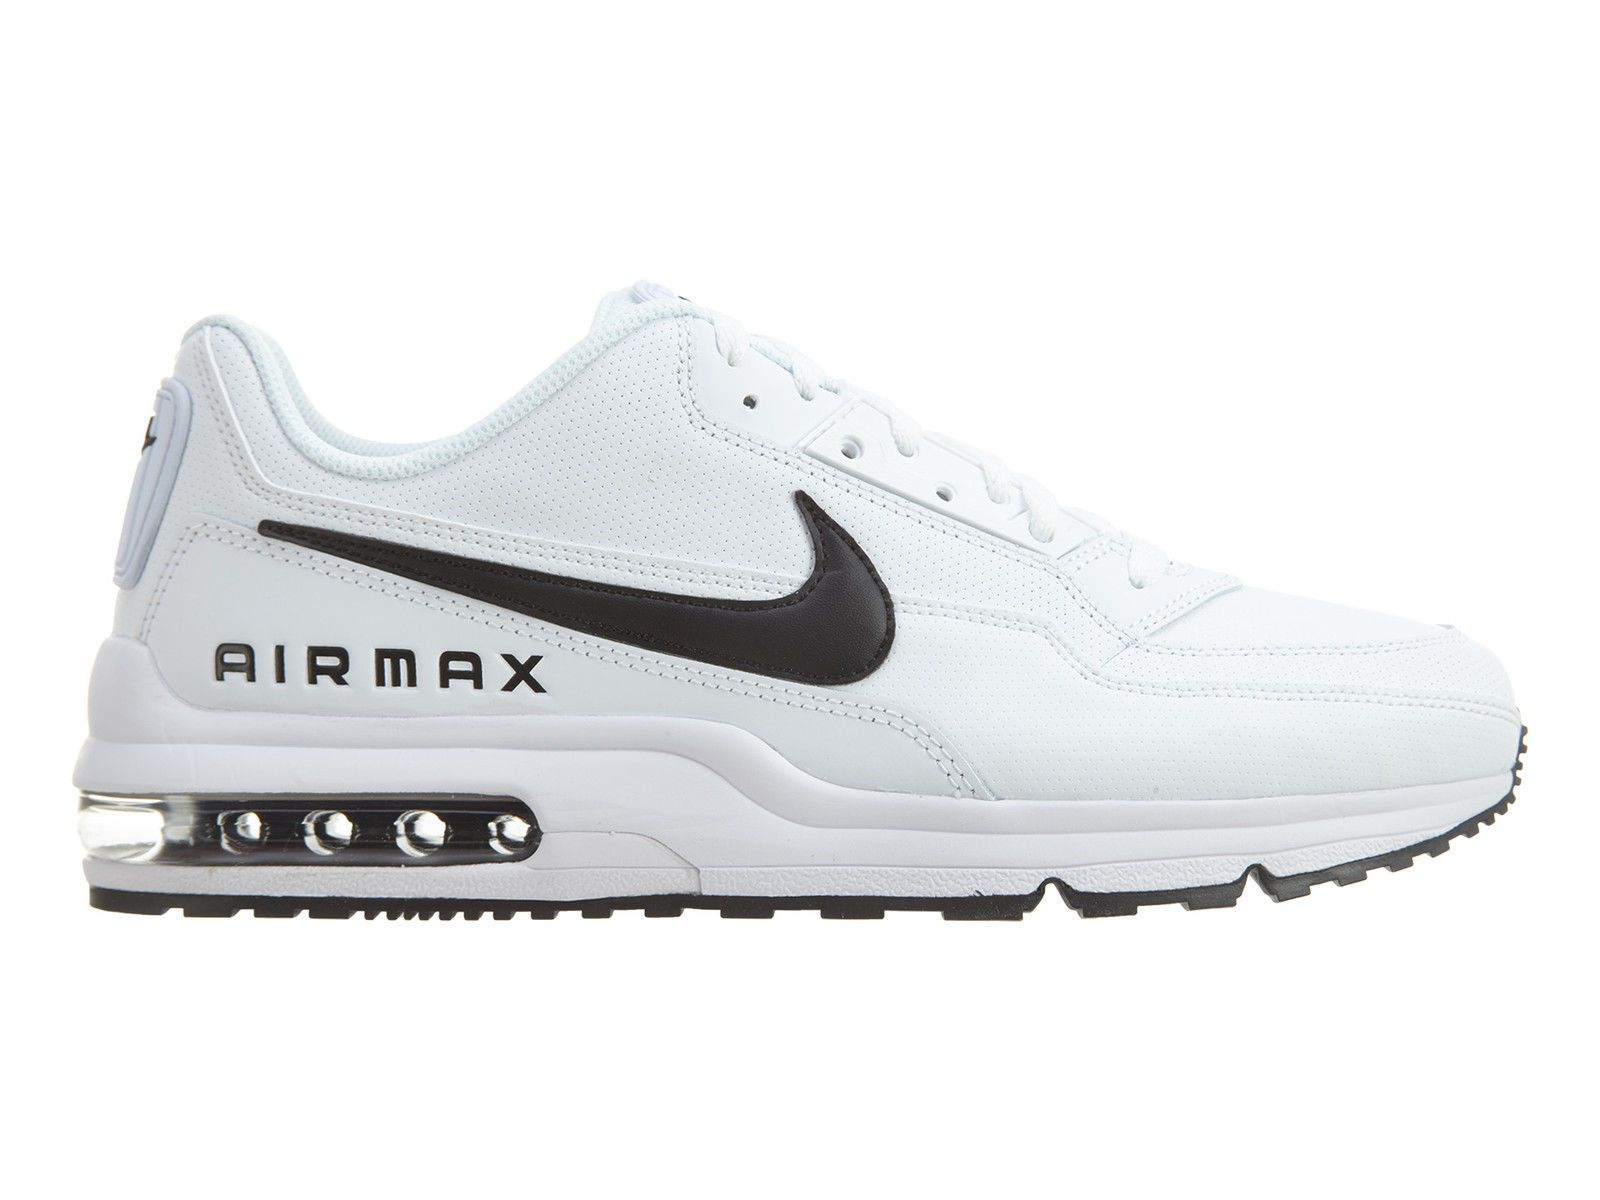 f7fcdbf3f4007a Nike Air Max LTD 3 Mens 687977-107 White Black Leather Running Shoes Size 10